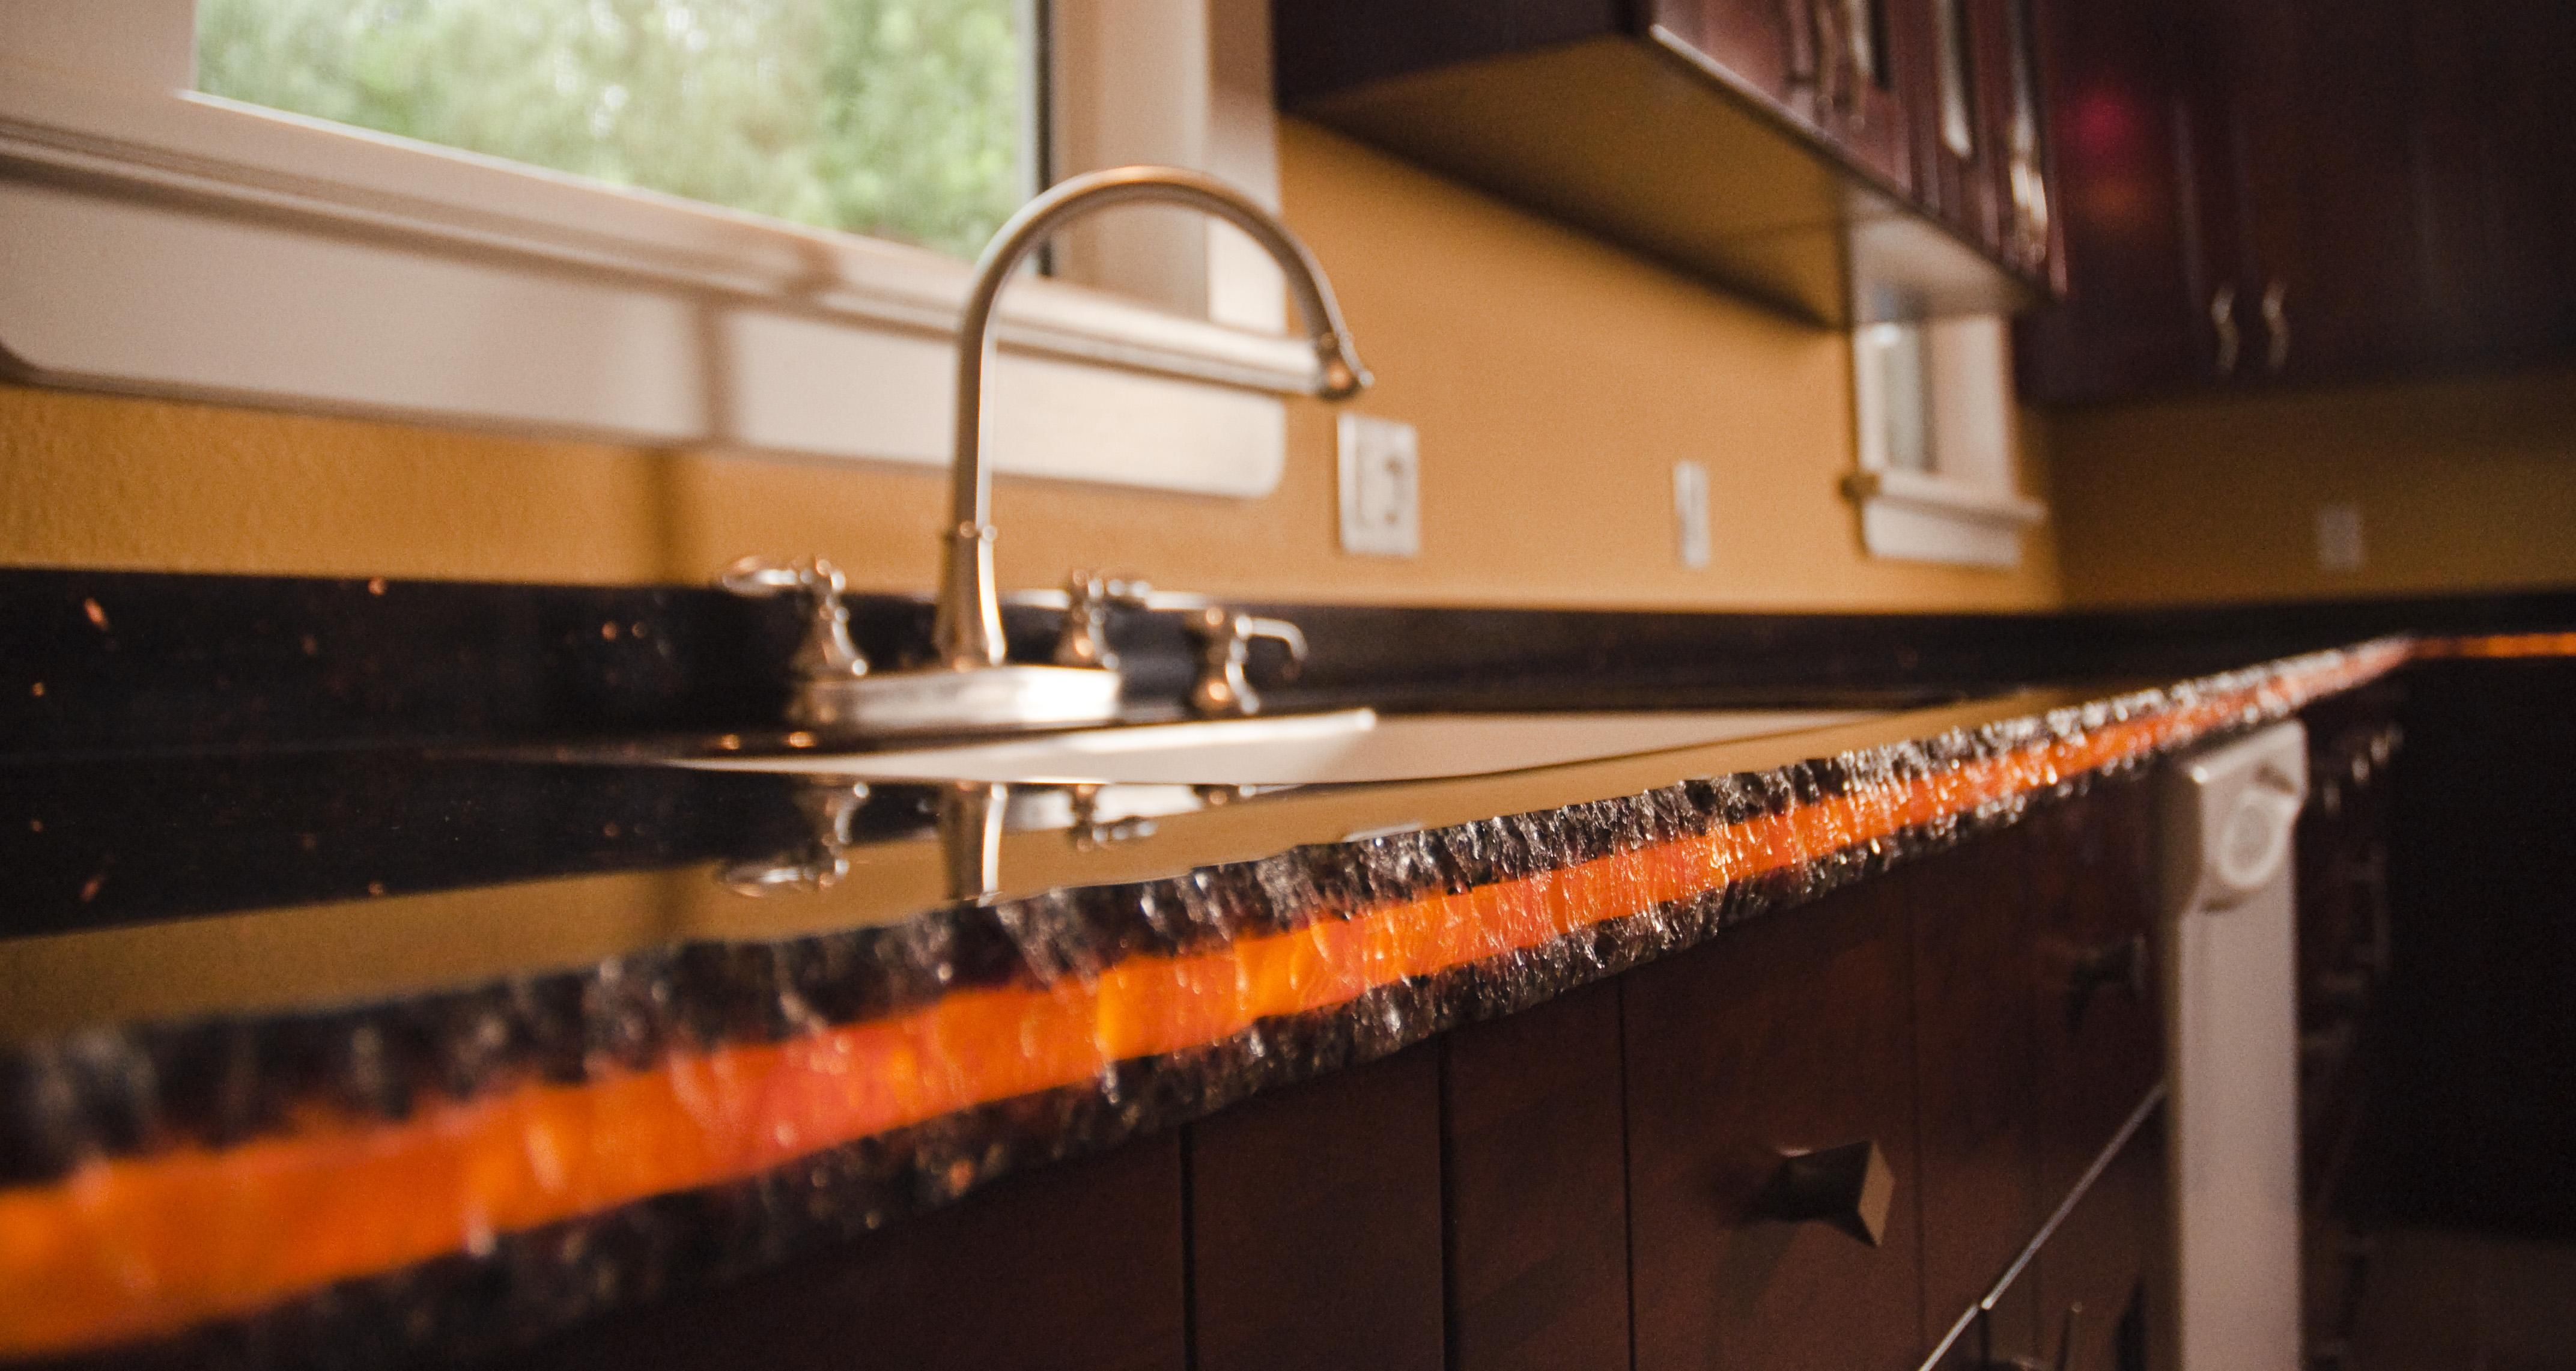 Copper Canyon Granite Countertops Molten Lava Avonite Surfaces Copper Canyon With Amber